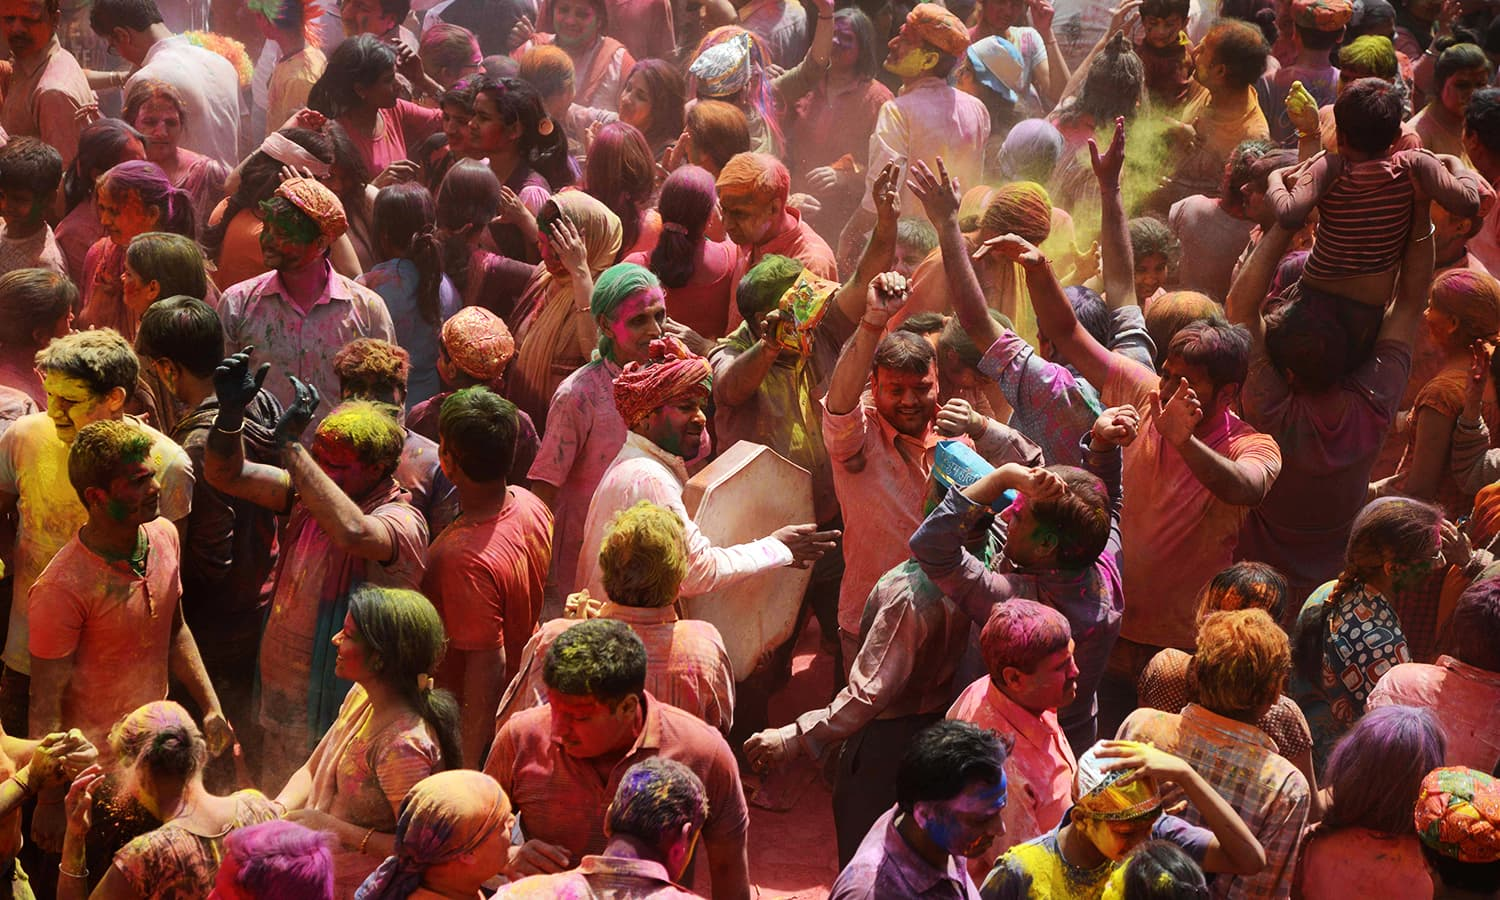 Indian Hindu devotees take part in celebrations for the Holi festival at a Temple in Siliguri on March 13. — AFP